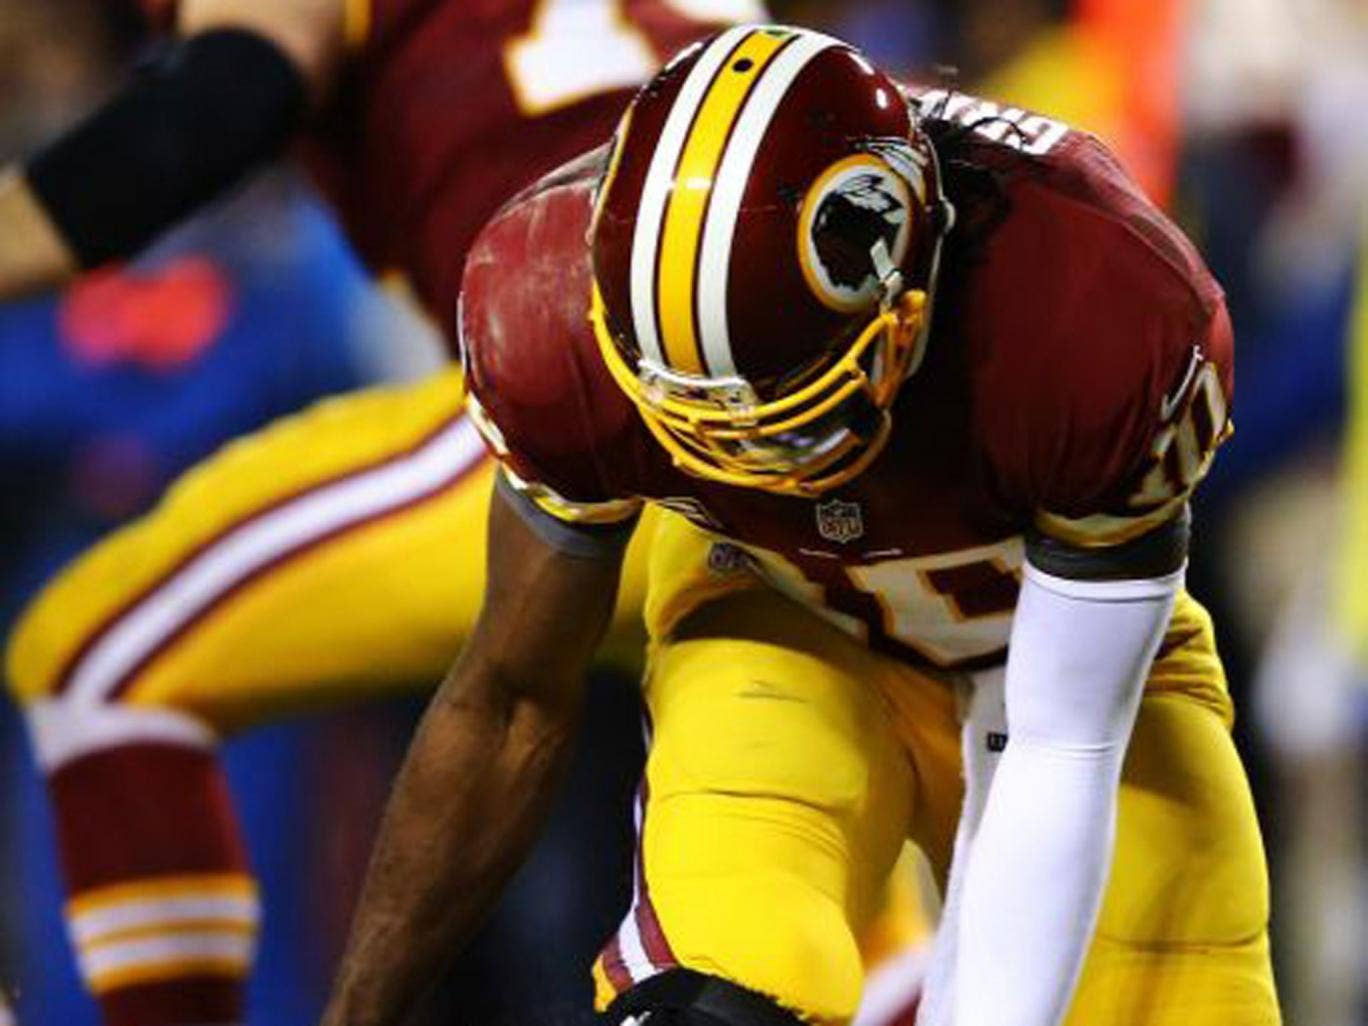 Robert Griffin III played on last week with a serious knee injury